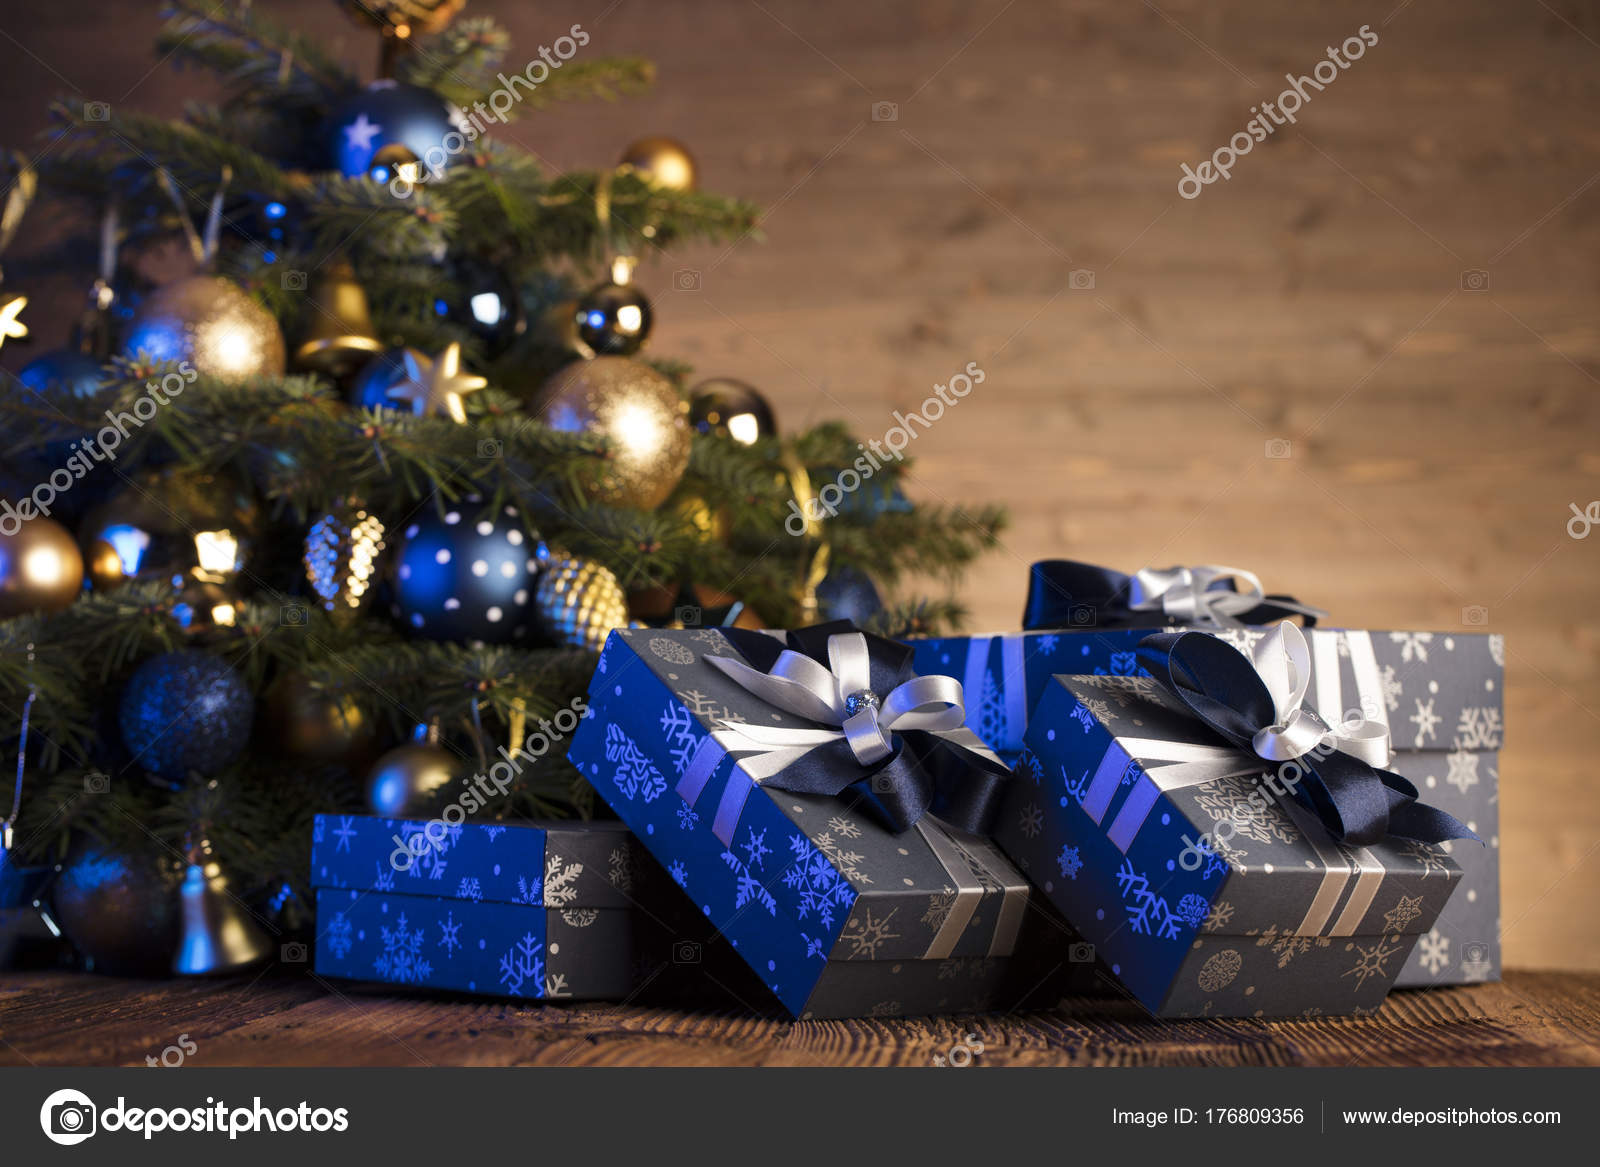 christmas decorations blue gold aesthetics rustic wooden table place text stock photo - Blue And Gold Christmas Decorations